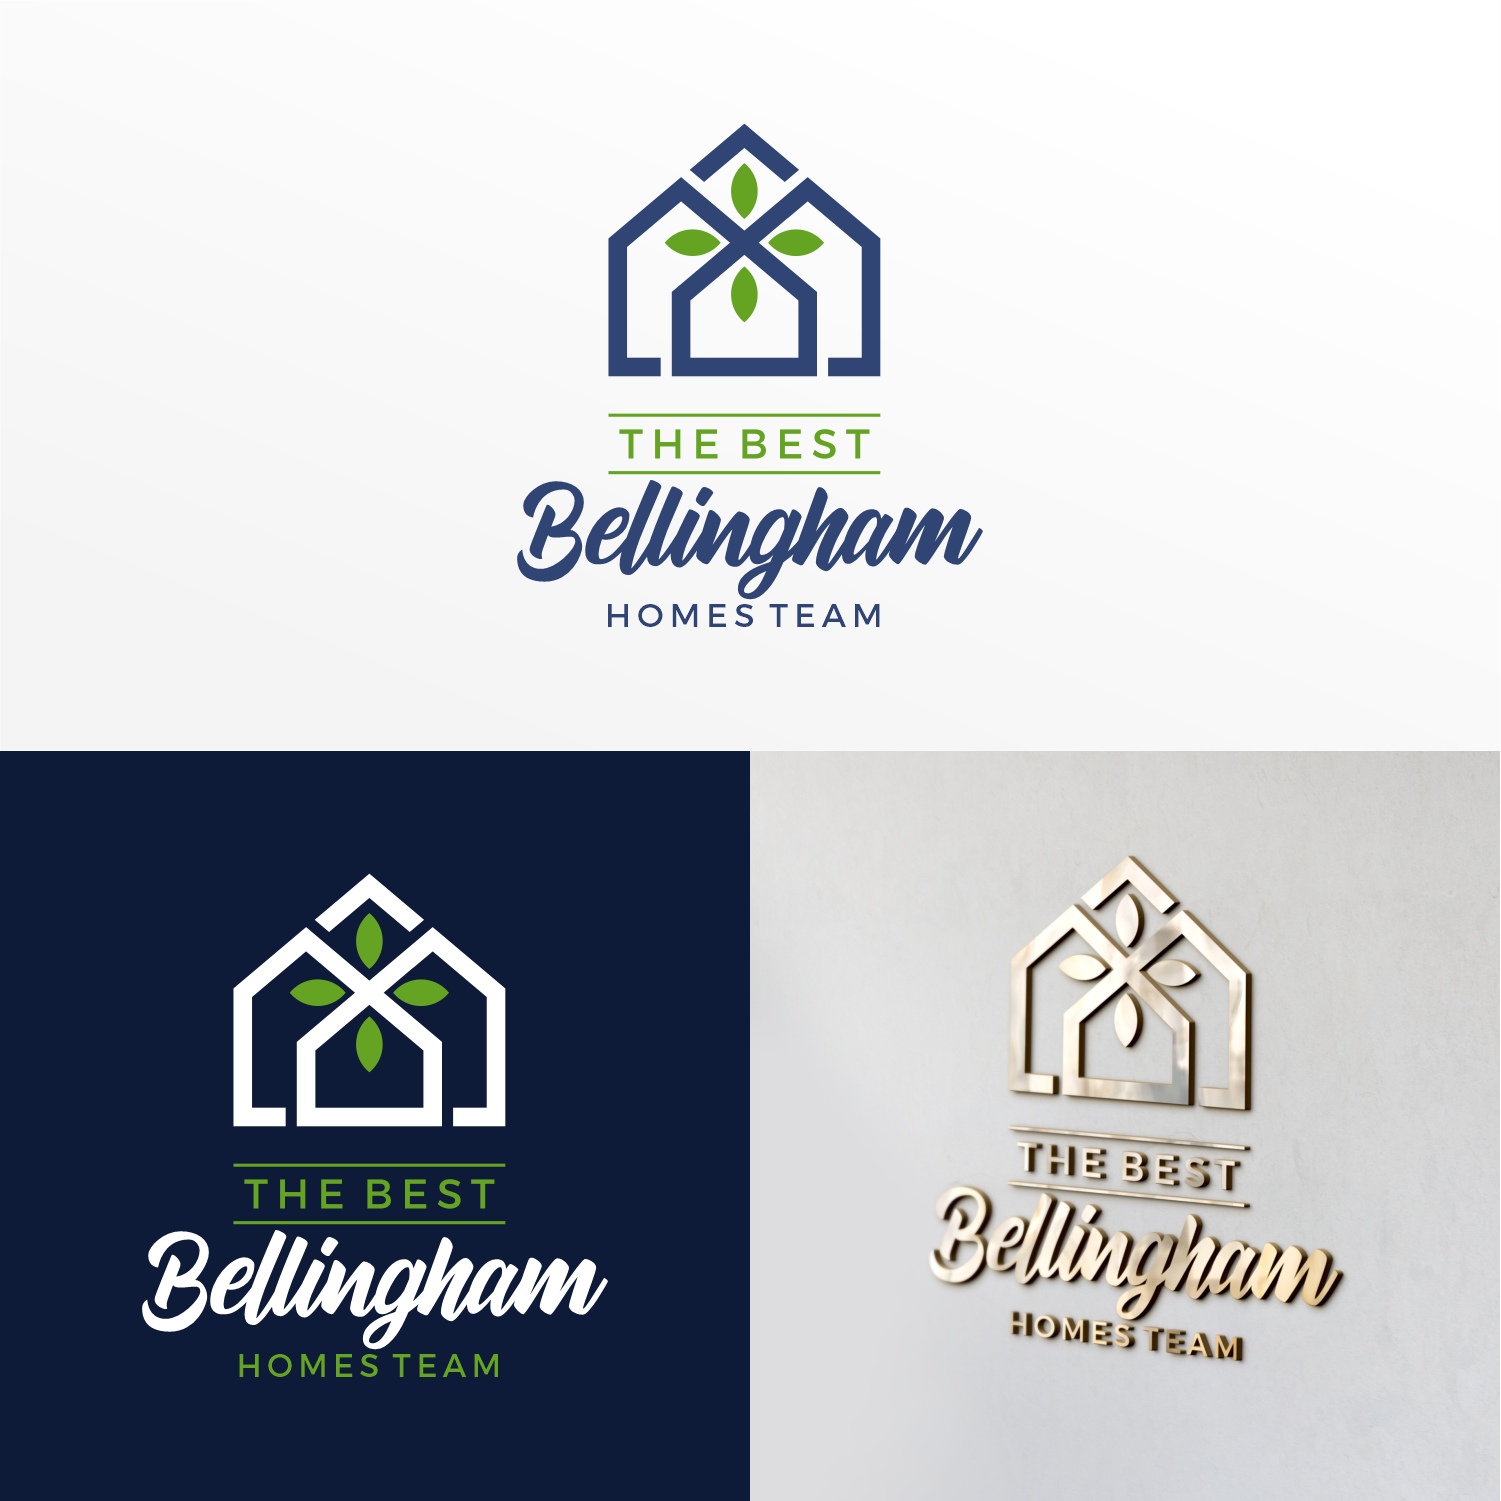 Seeking clean, classy design for a high performing local real estate team